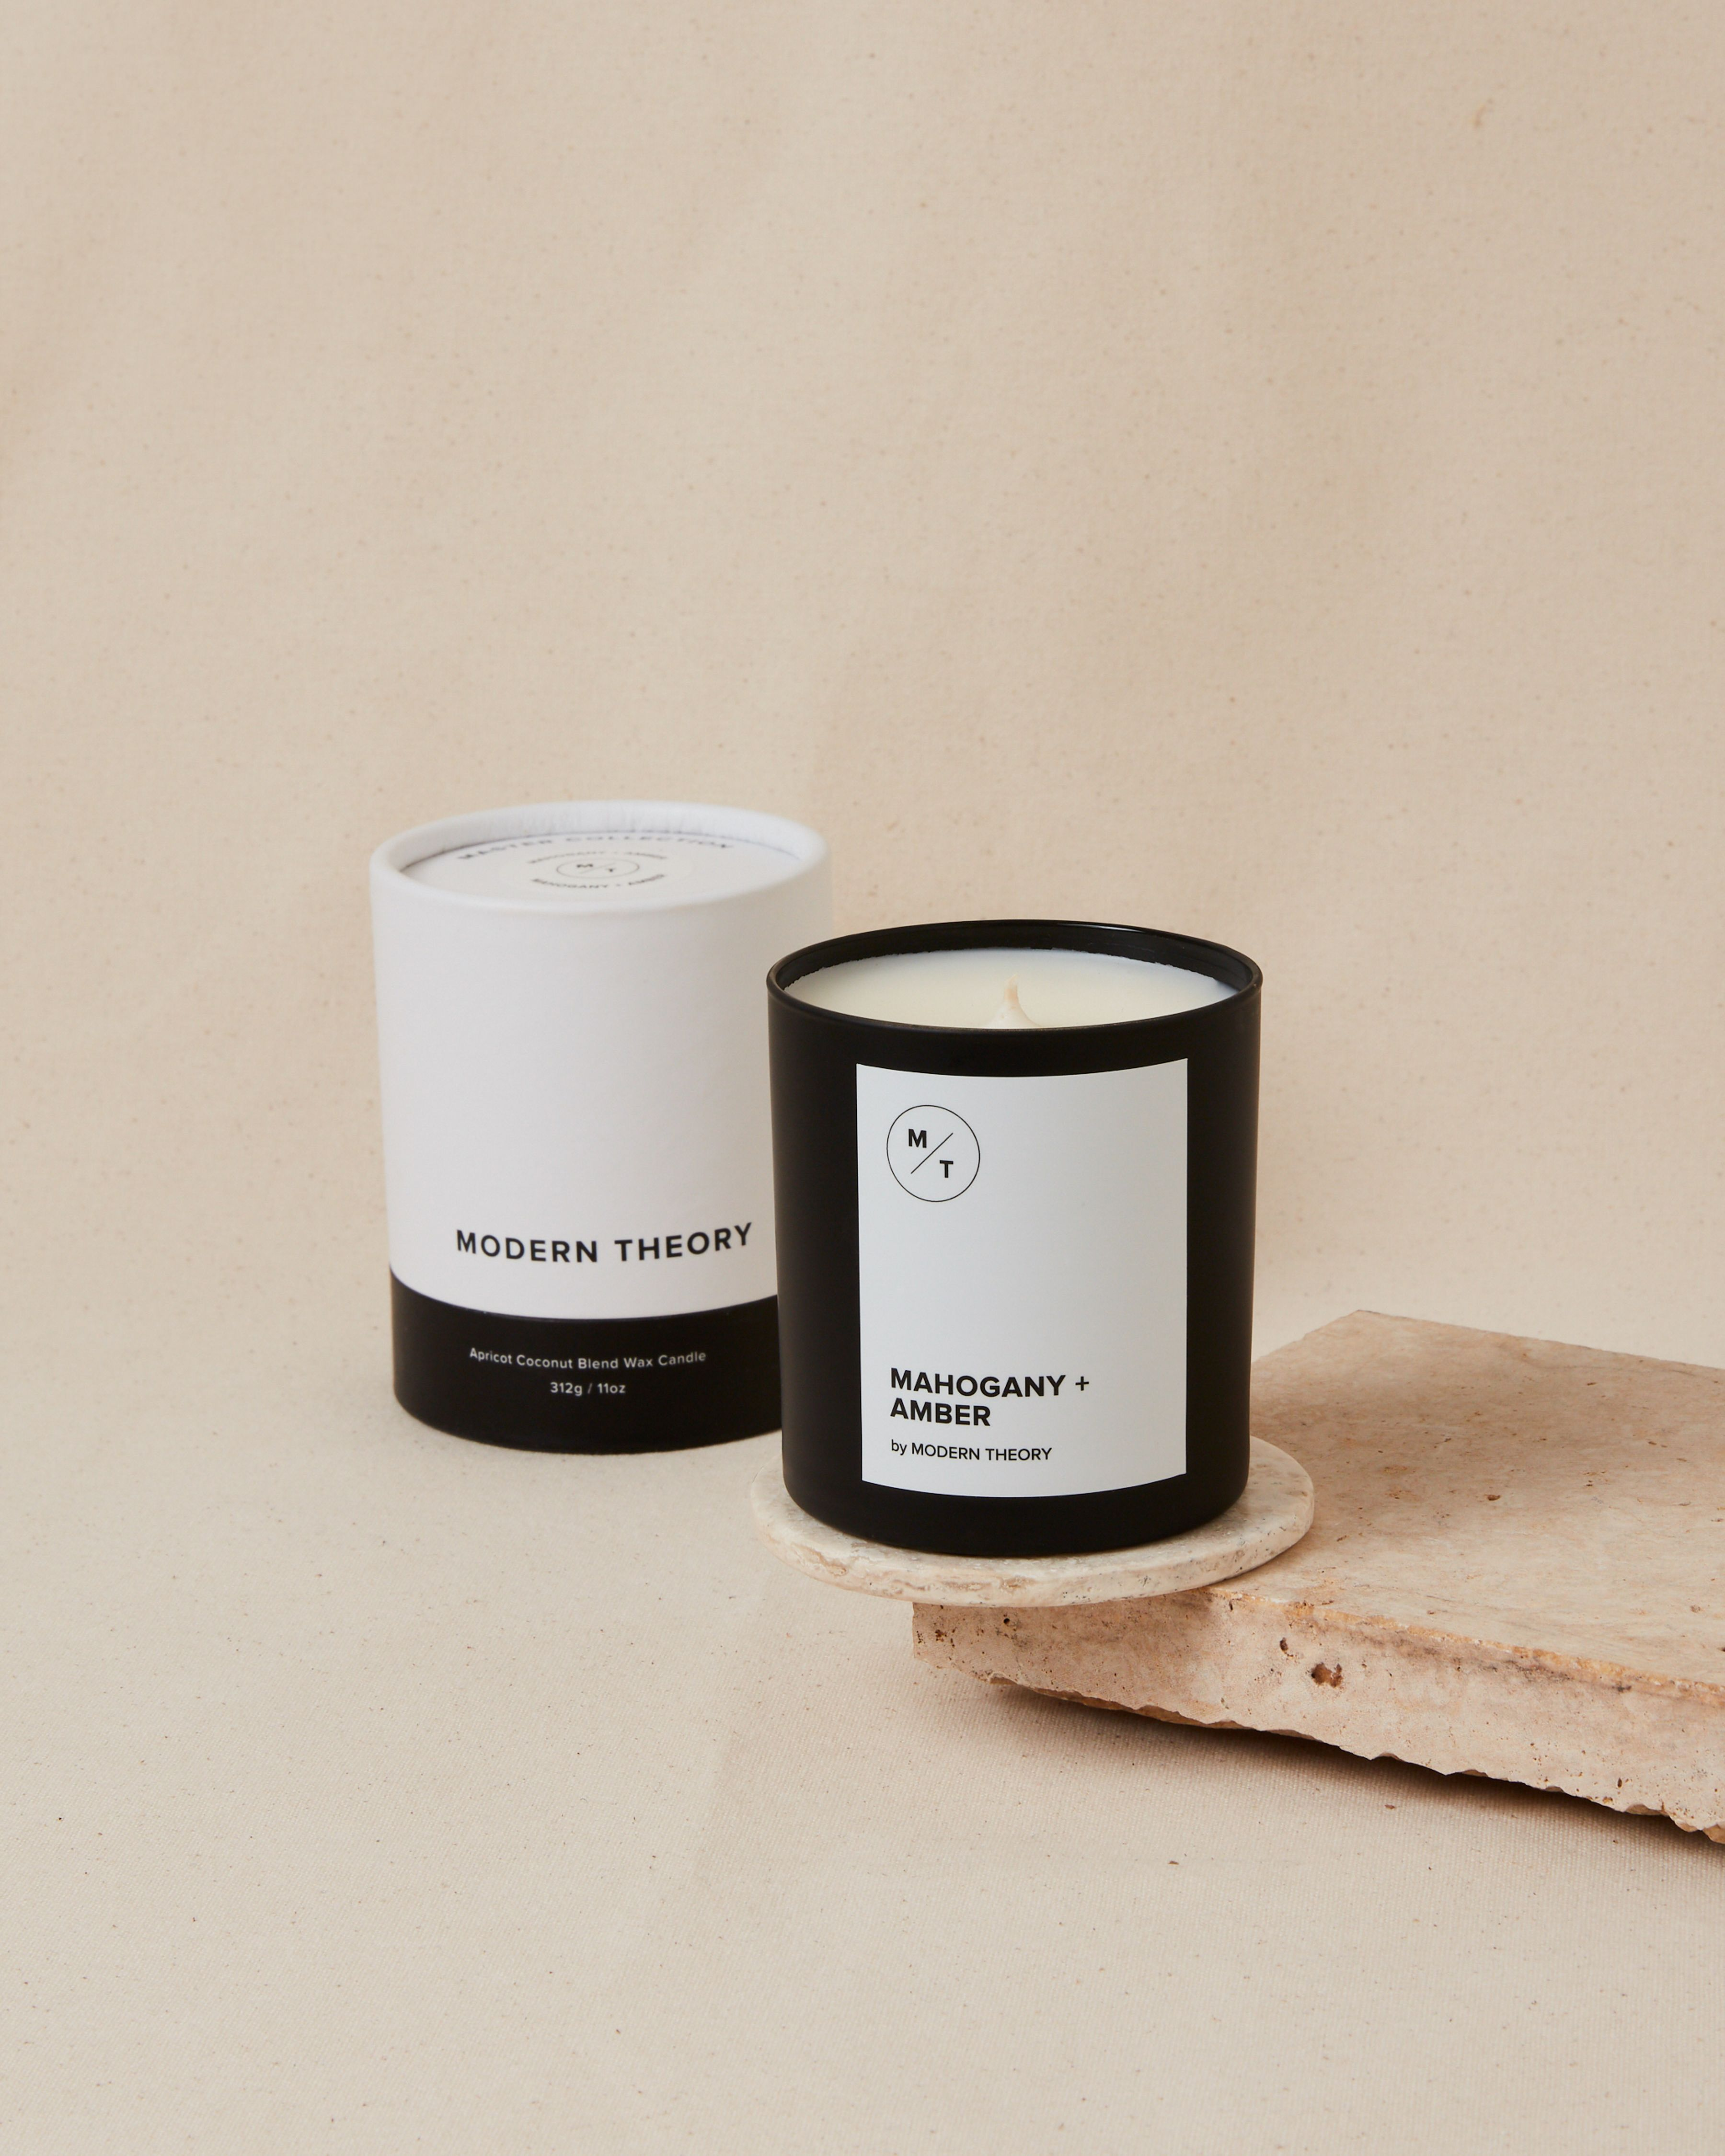 Product Image for Mahogany + Amber Candle